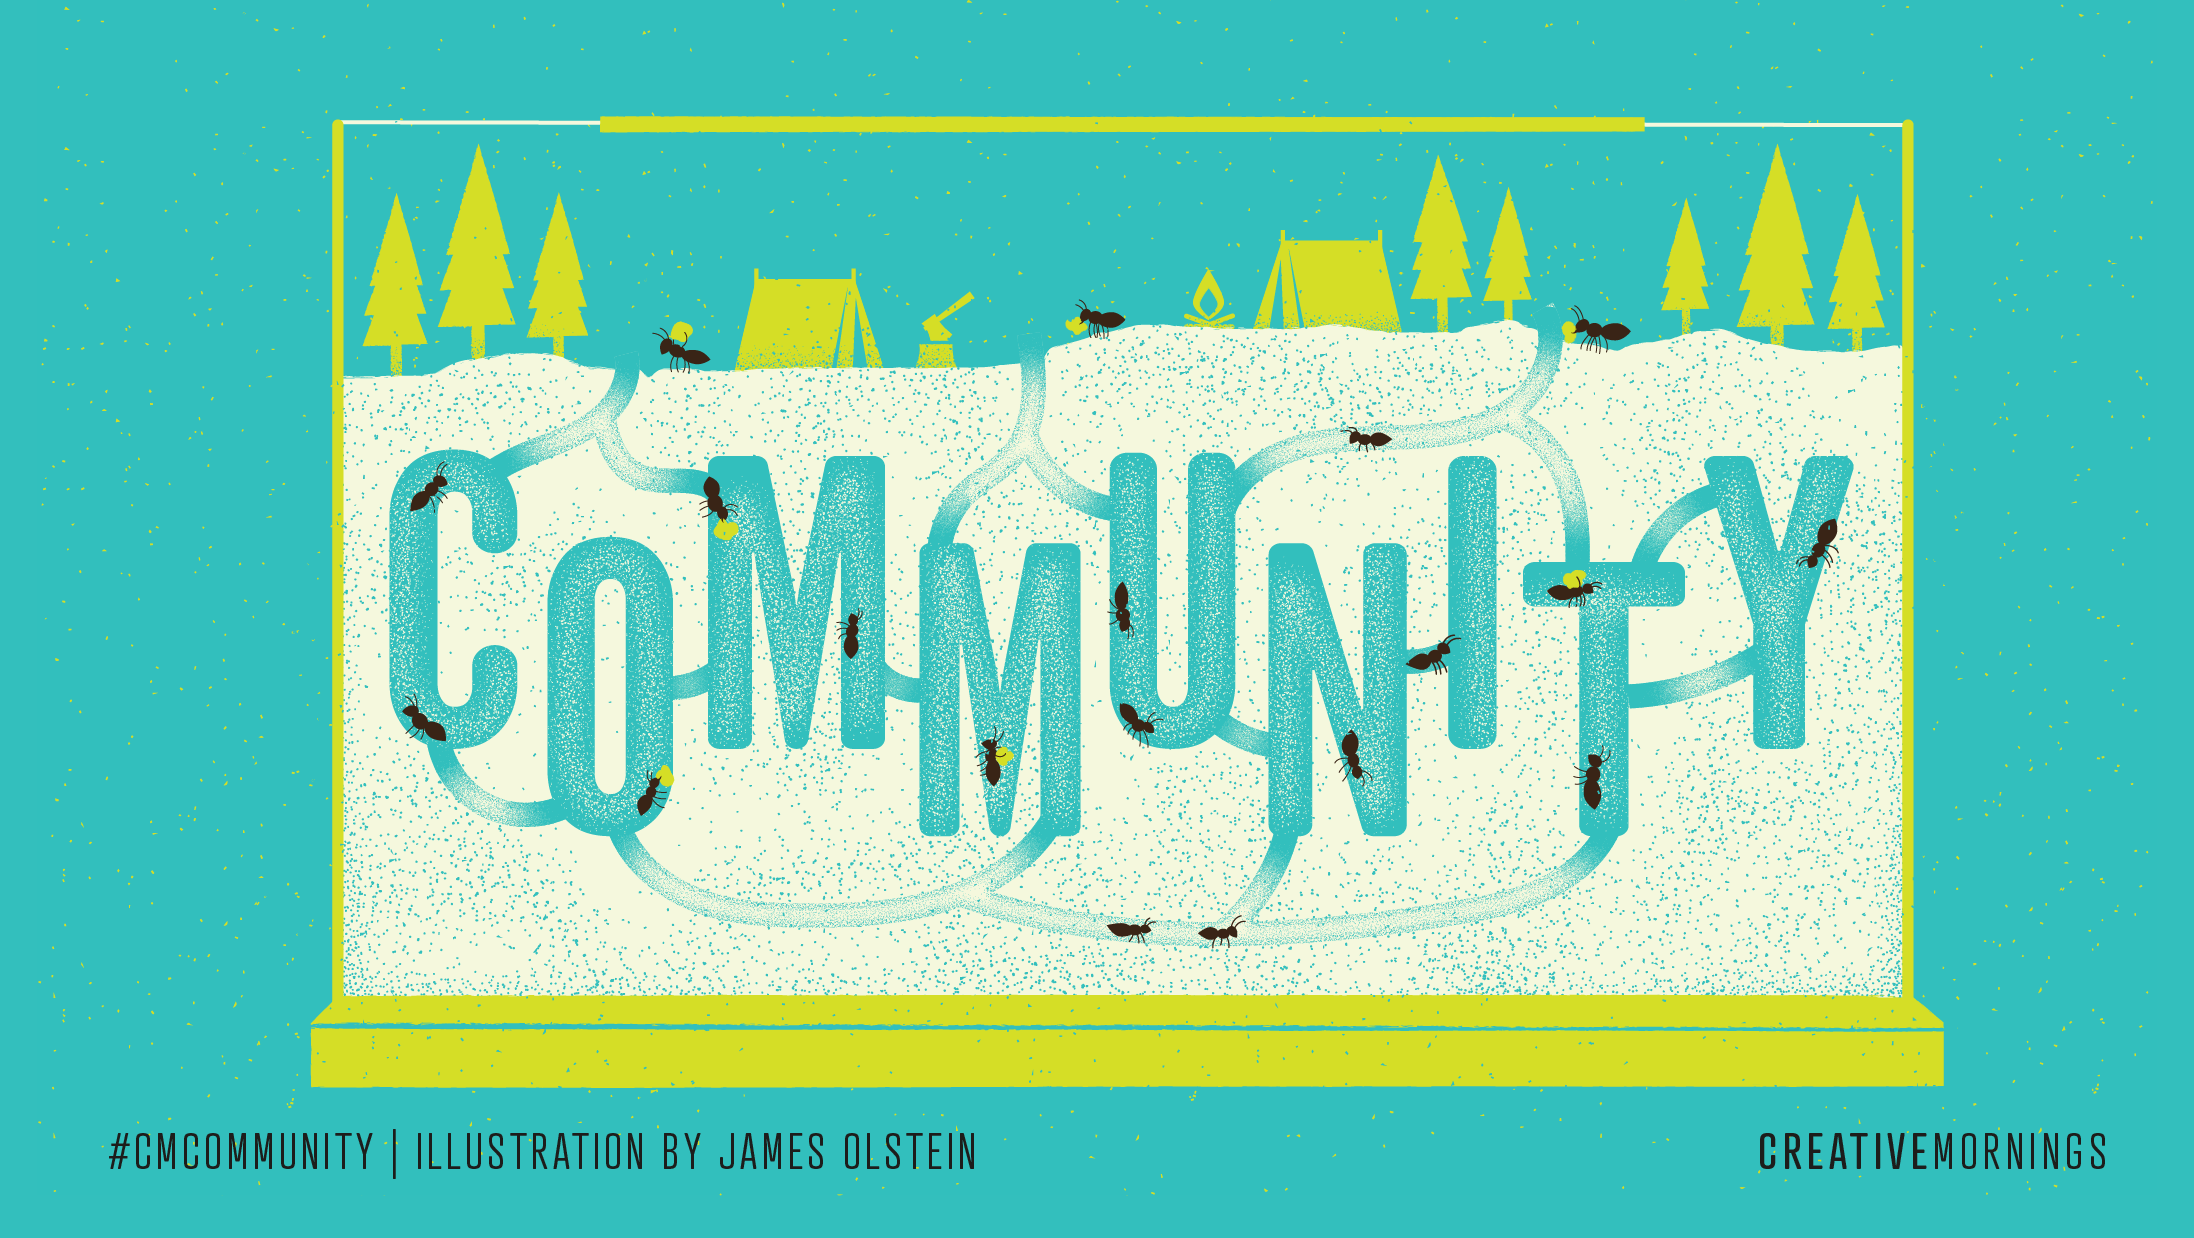 community creativemornings themes